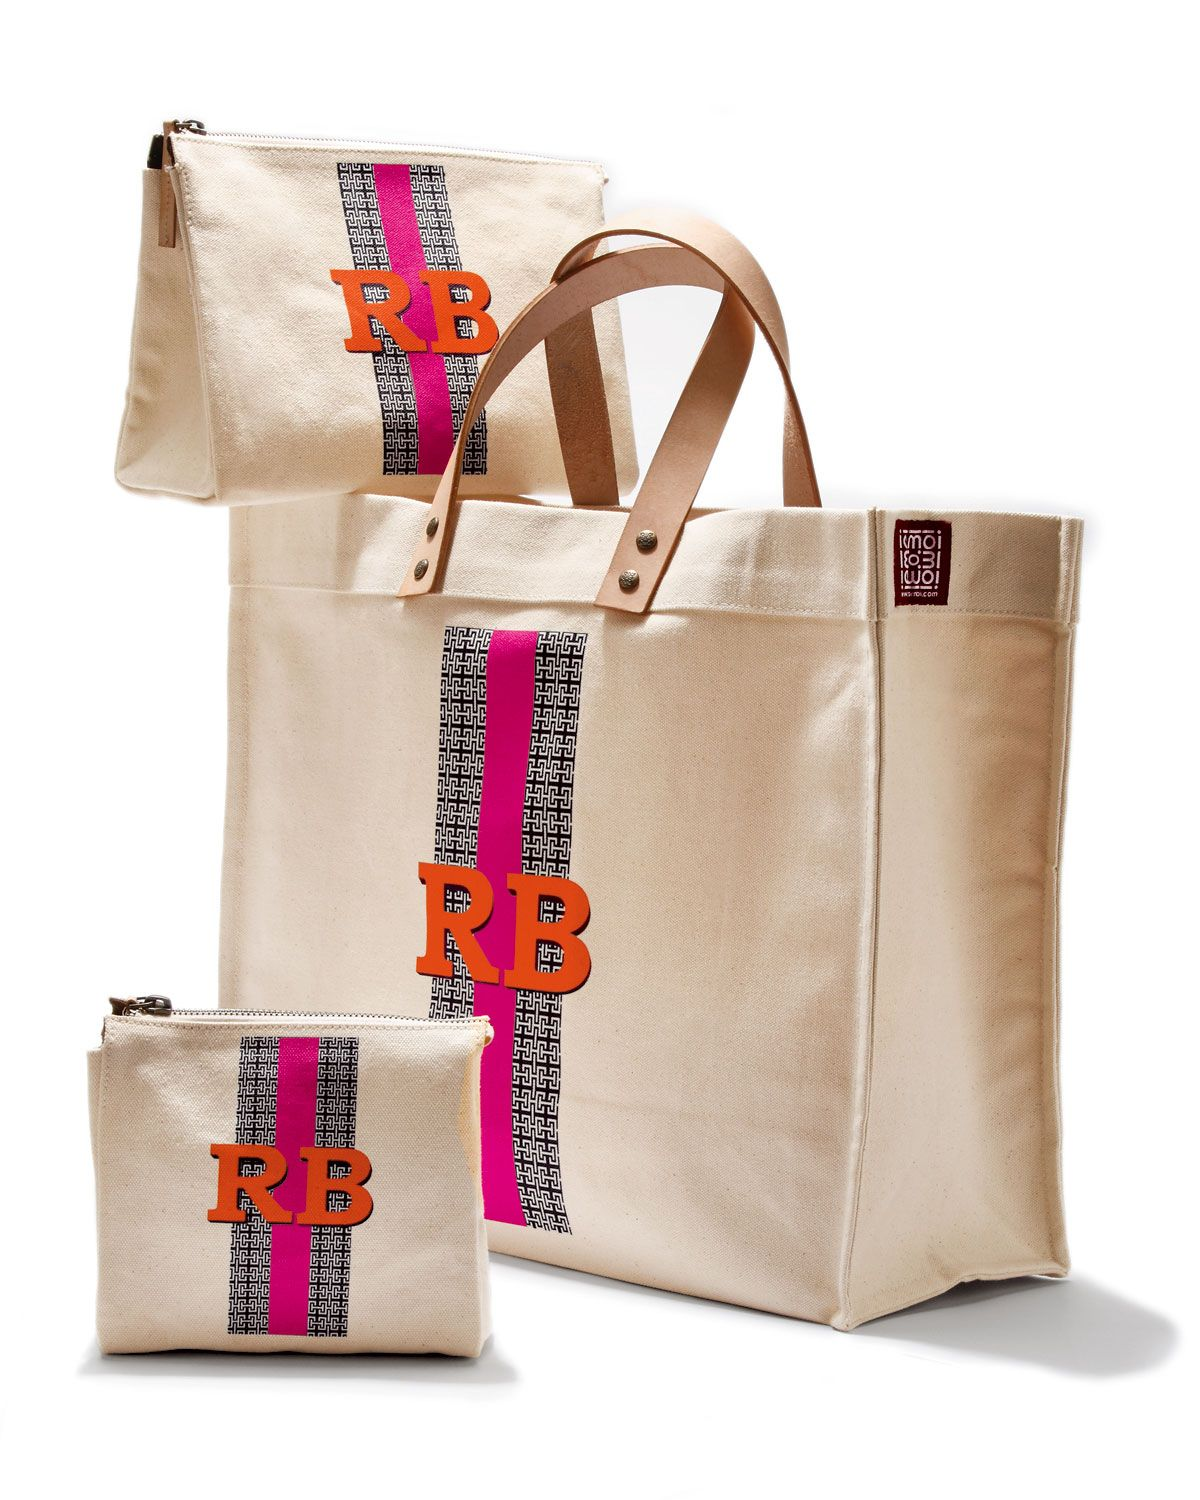 http://harrislove.com/iomoi-personalized-canvas-bags-p-3588.html ...